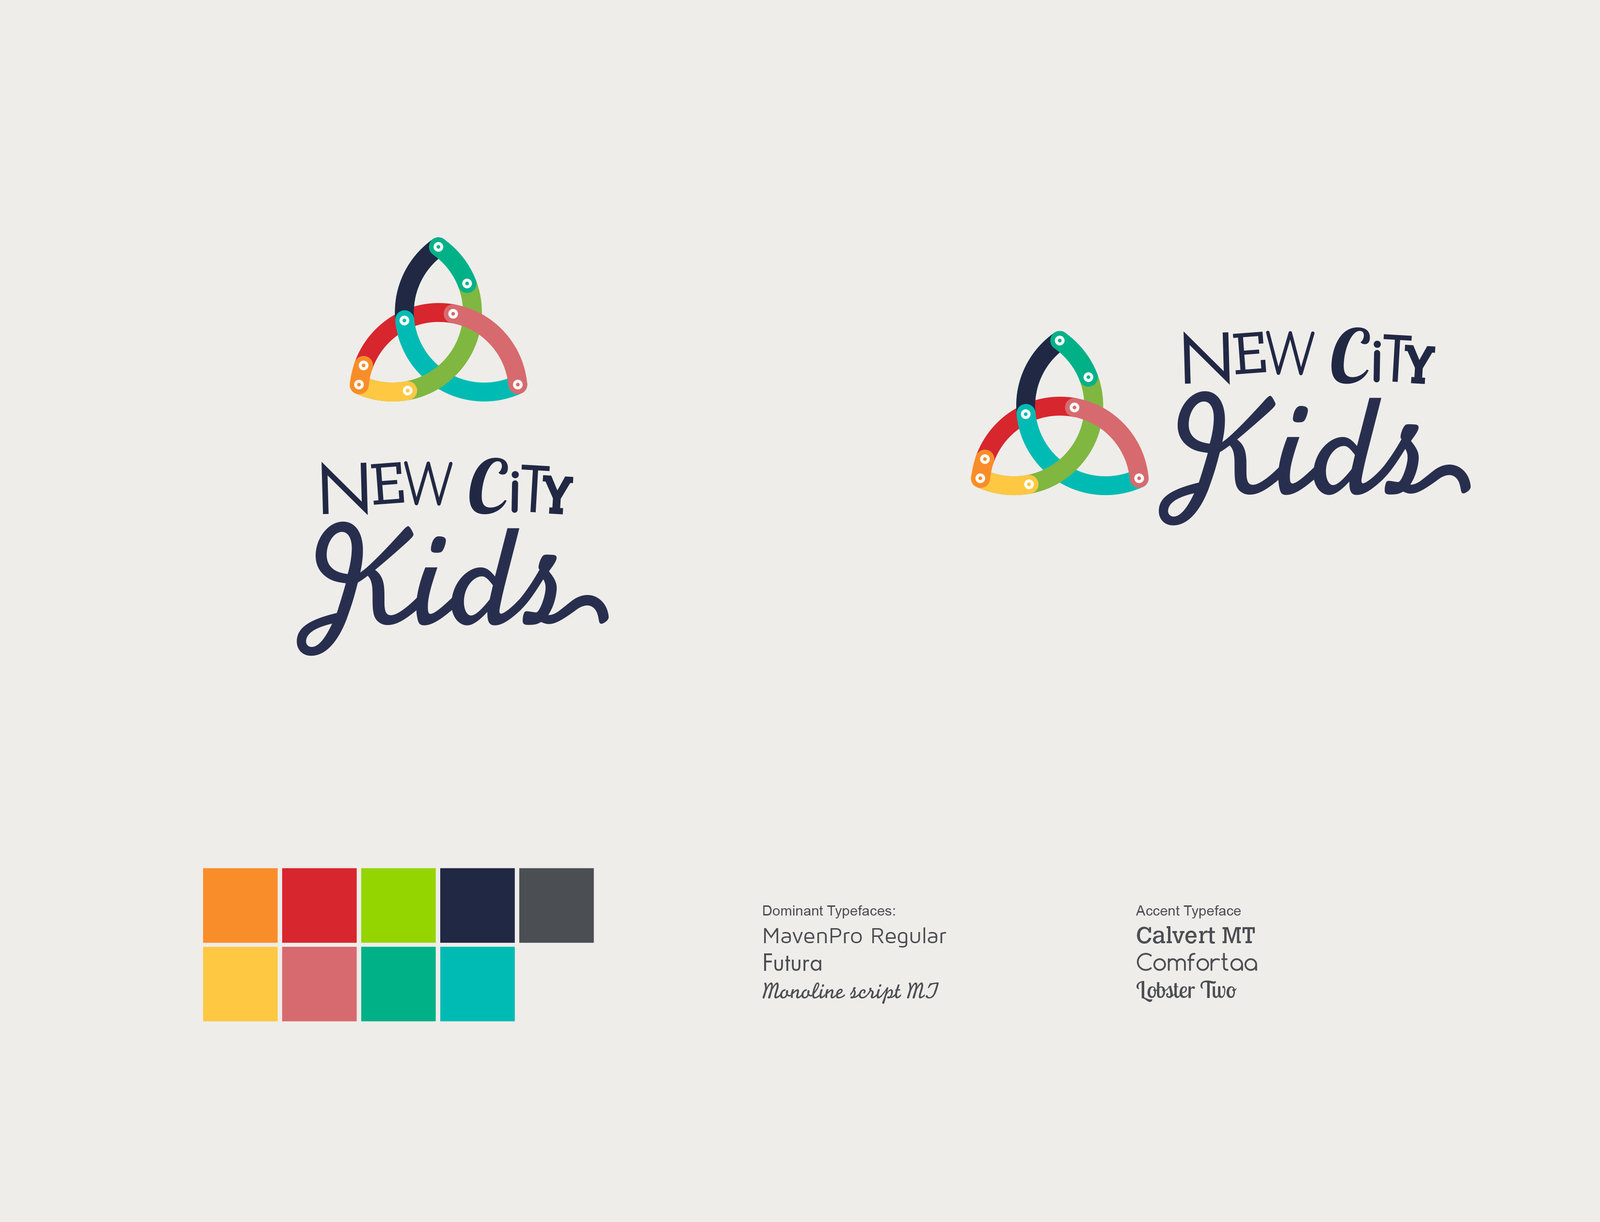 New City Kids branding